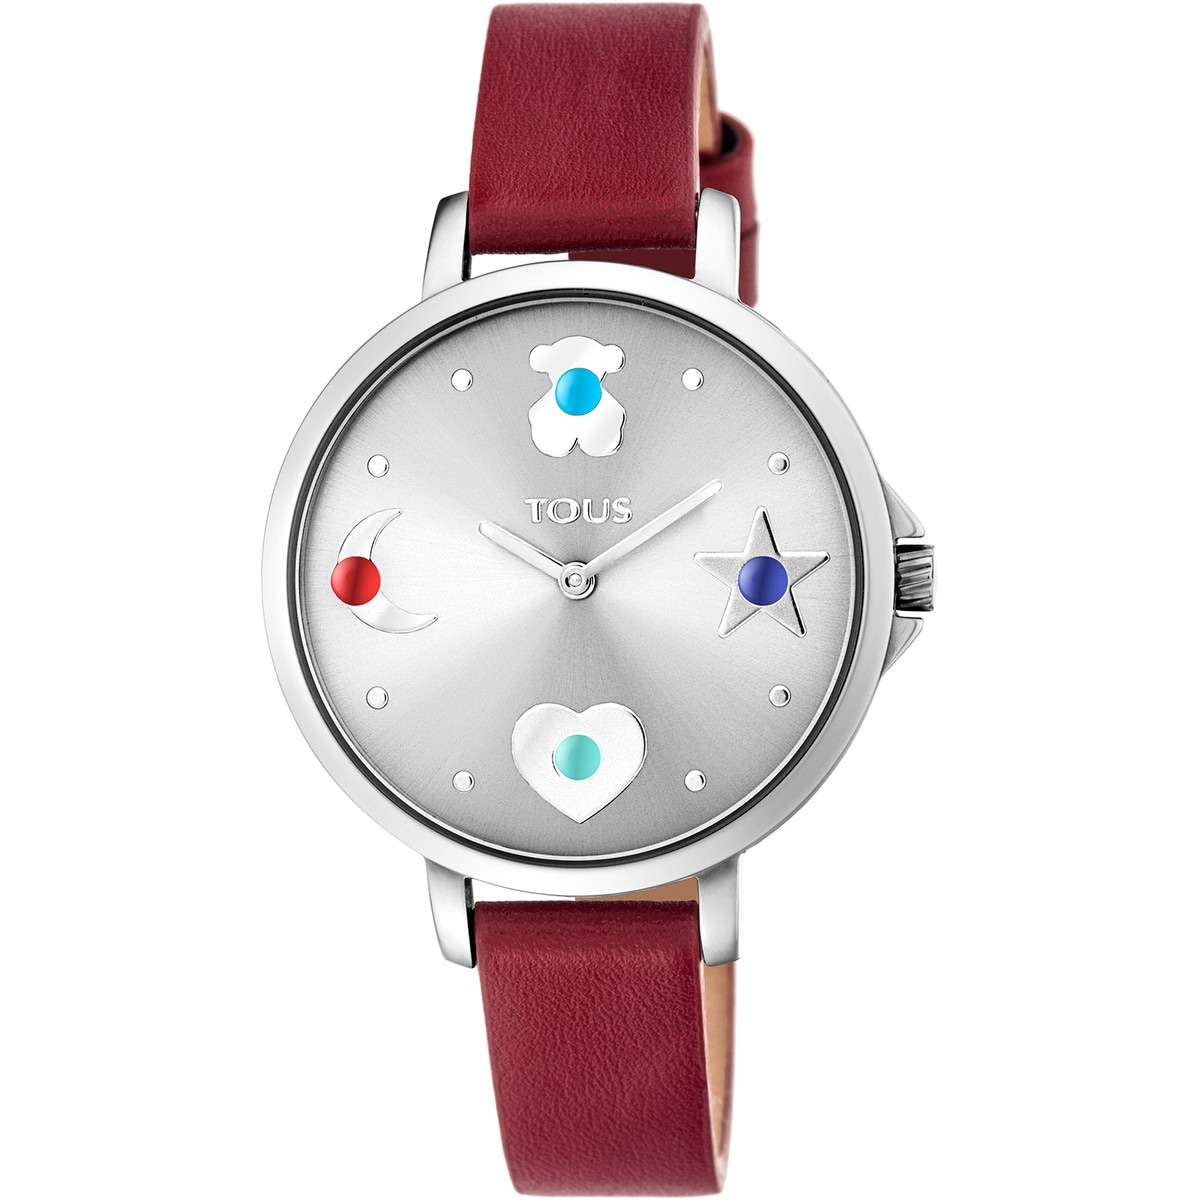 Steel Super Power Watch with red leather strap